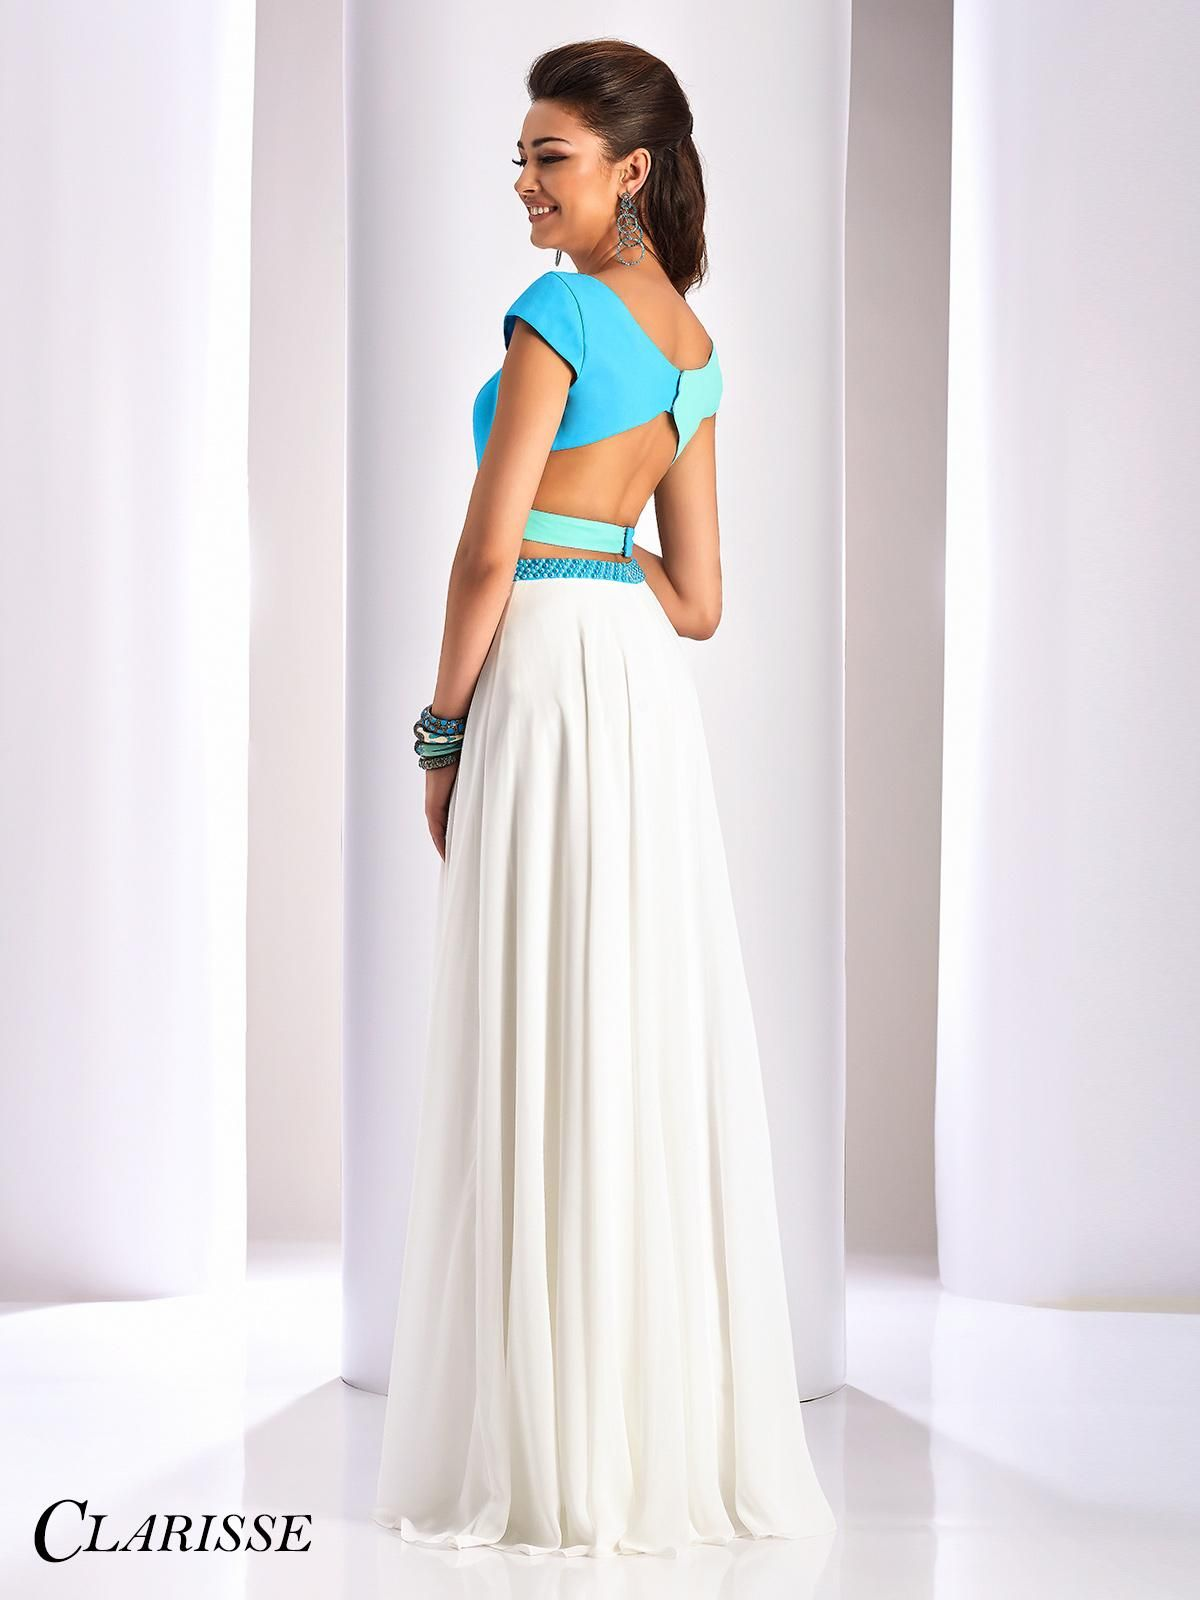 9a2c358d618 Unique Two Piece Clarisse Prom Dress 3070. Stand out in this unique prom  dress with its flowing chiffon skirt